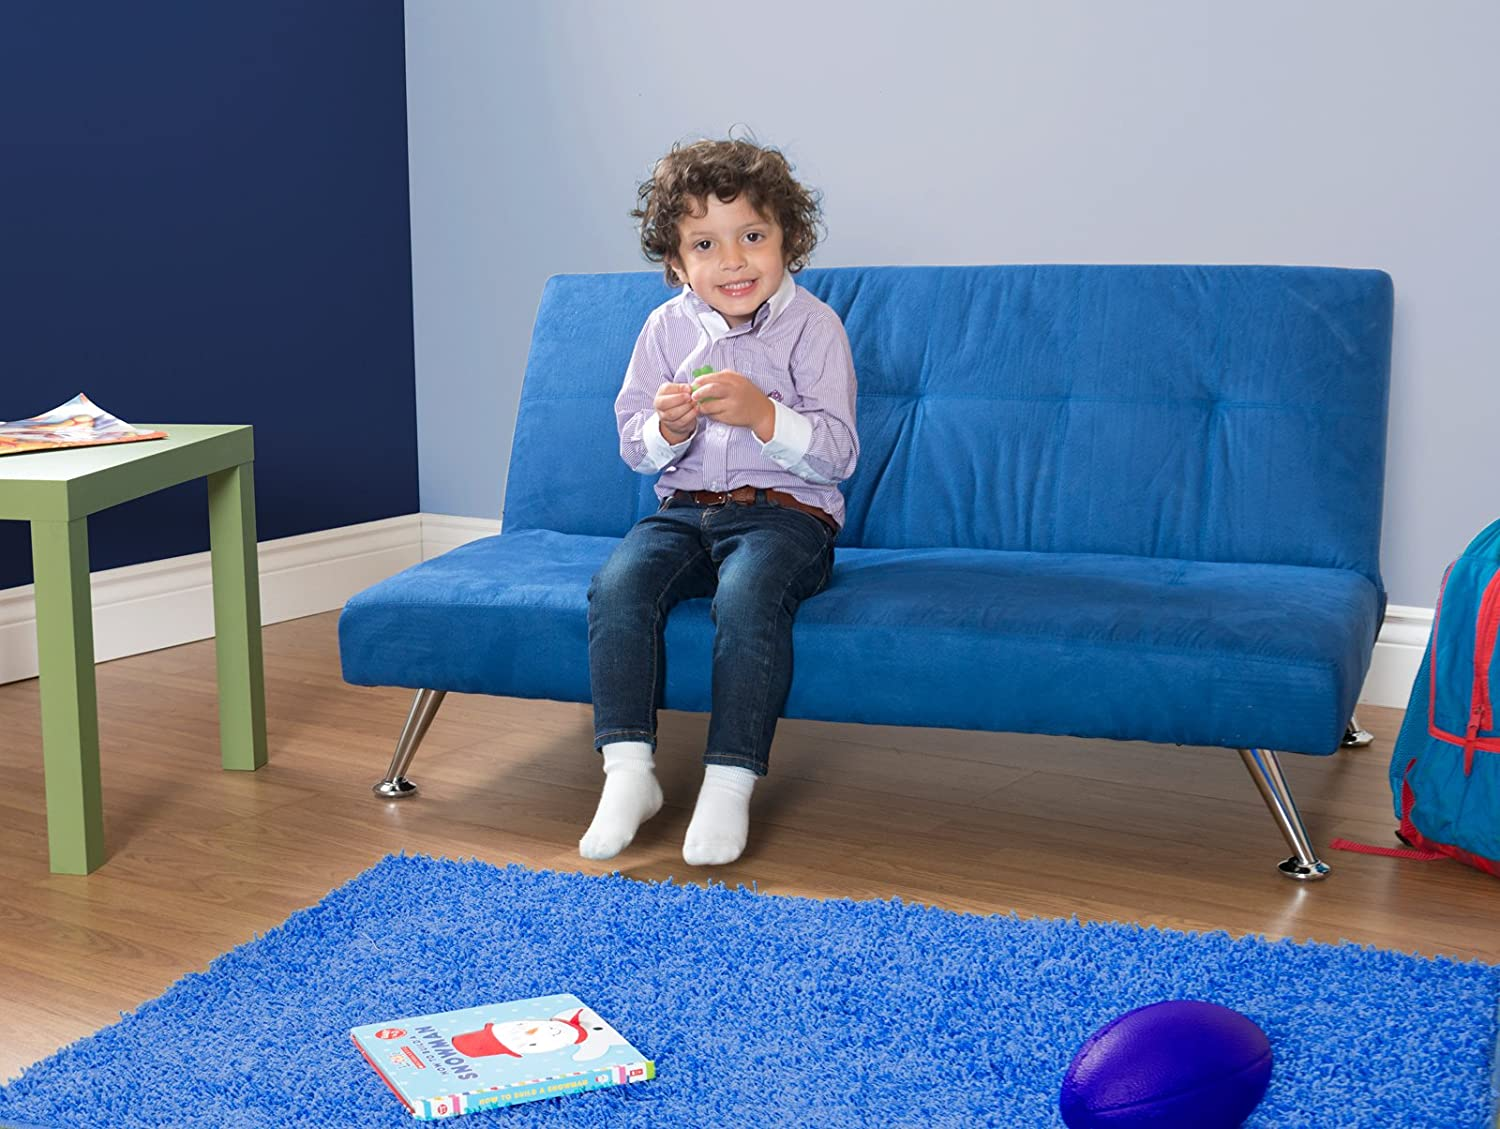 chair futon futons air s furniture kids phenomenal bed new comfortable blue for oriental roselawnlutheranofa toddler